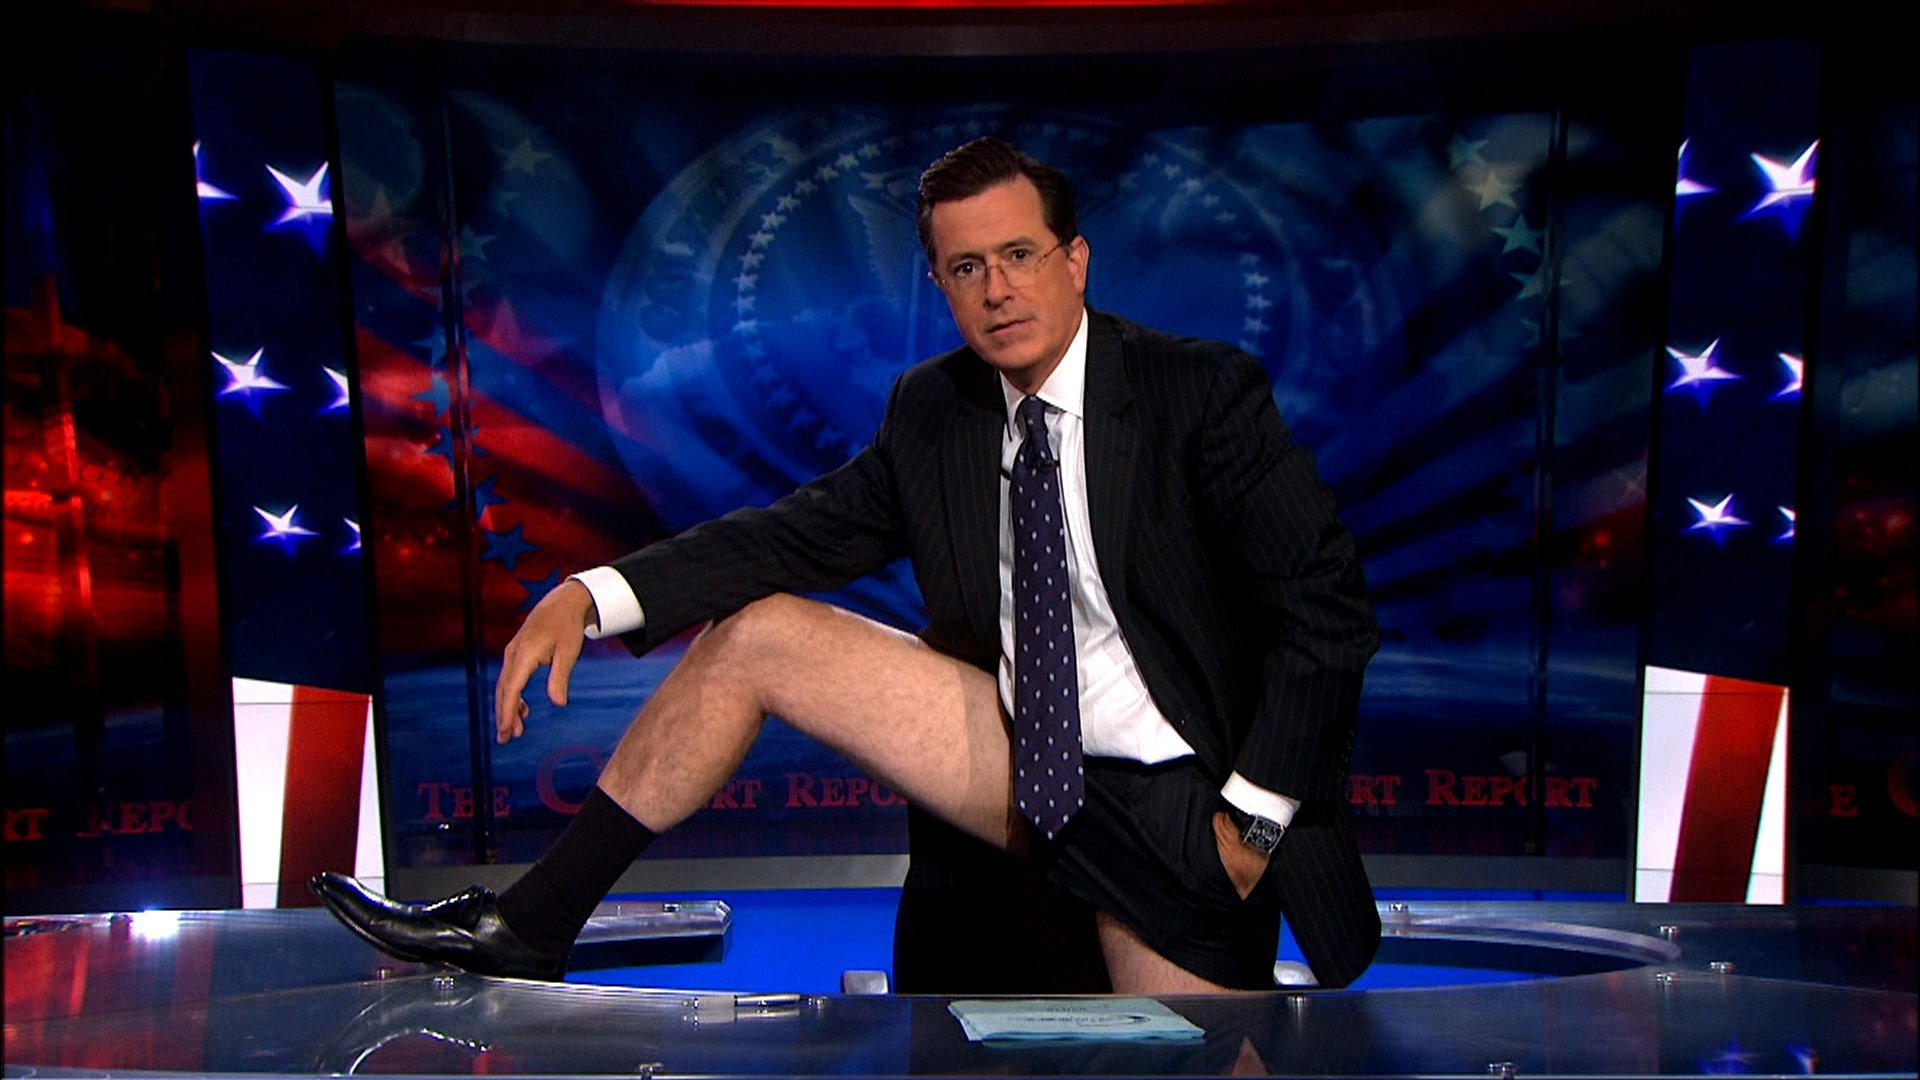 20 Stephen Colbert HD Wallpapers Background Images 1920x1080